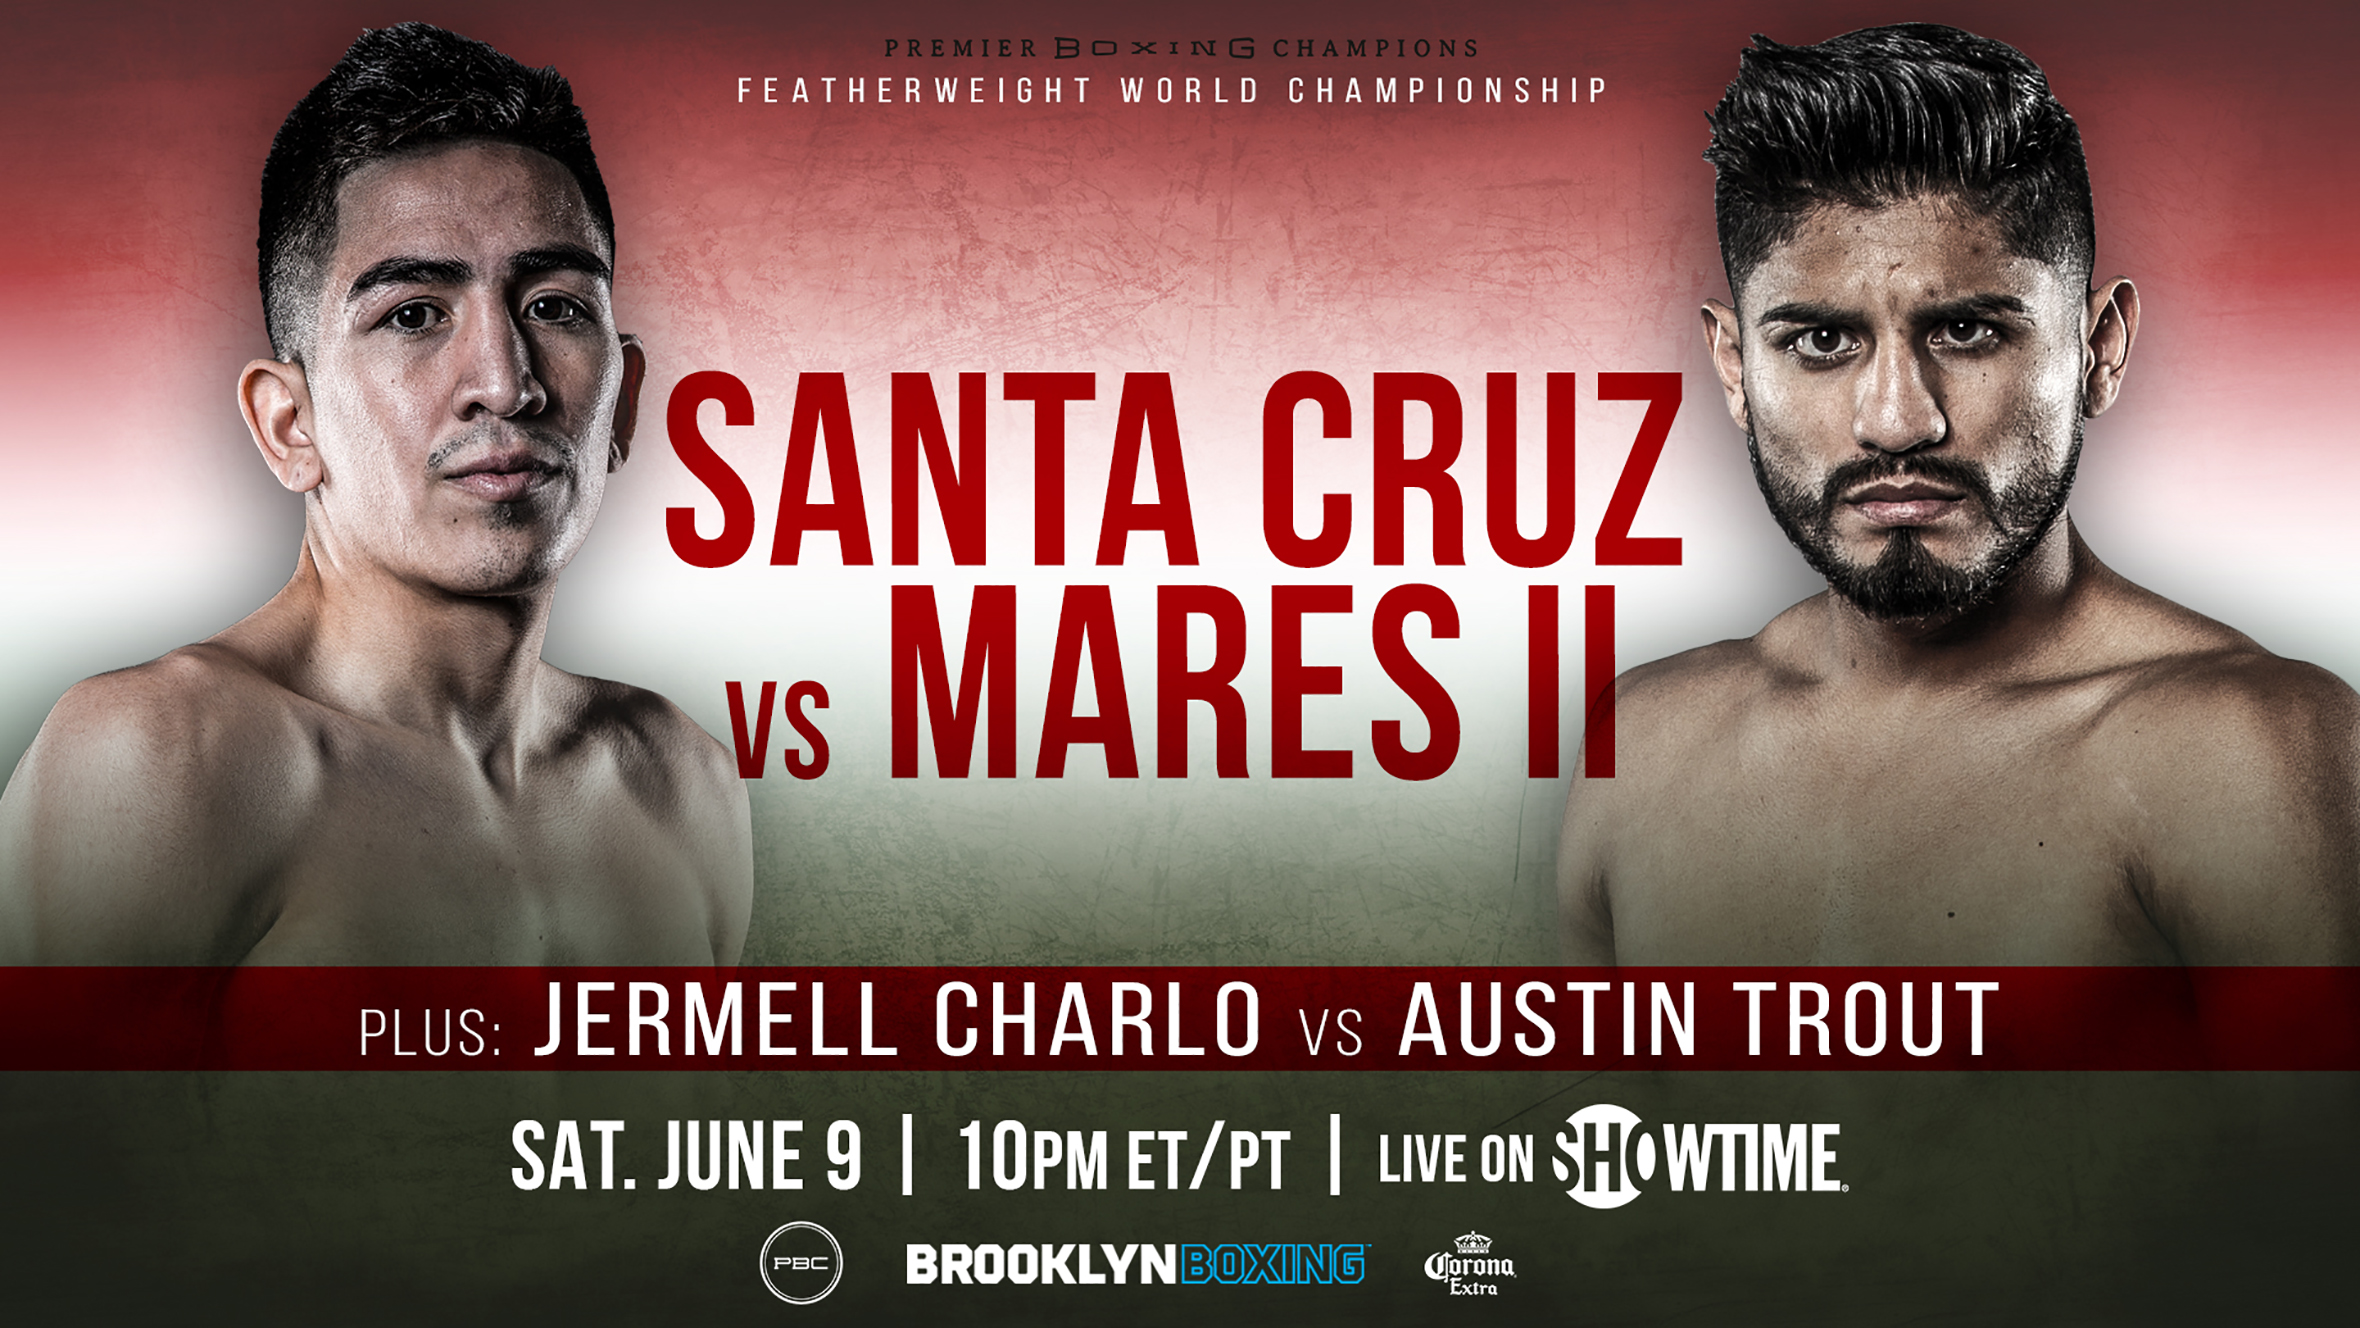 Santa Cruz-Mares II features two of boxing's statistical best